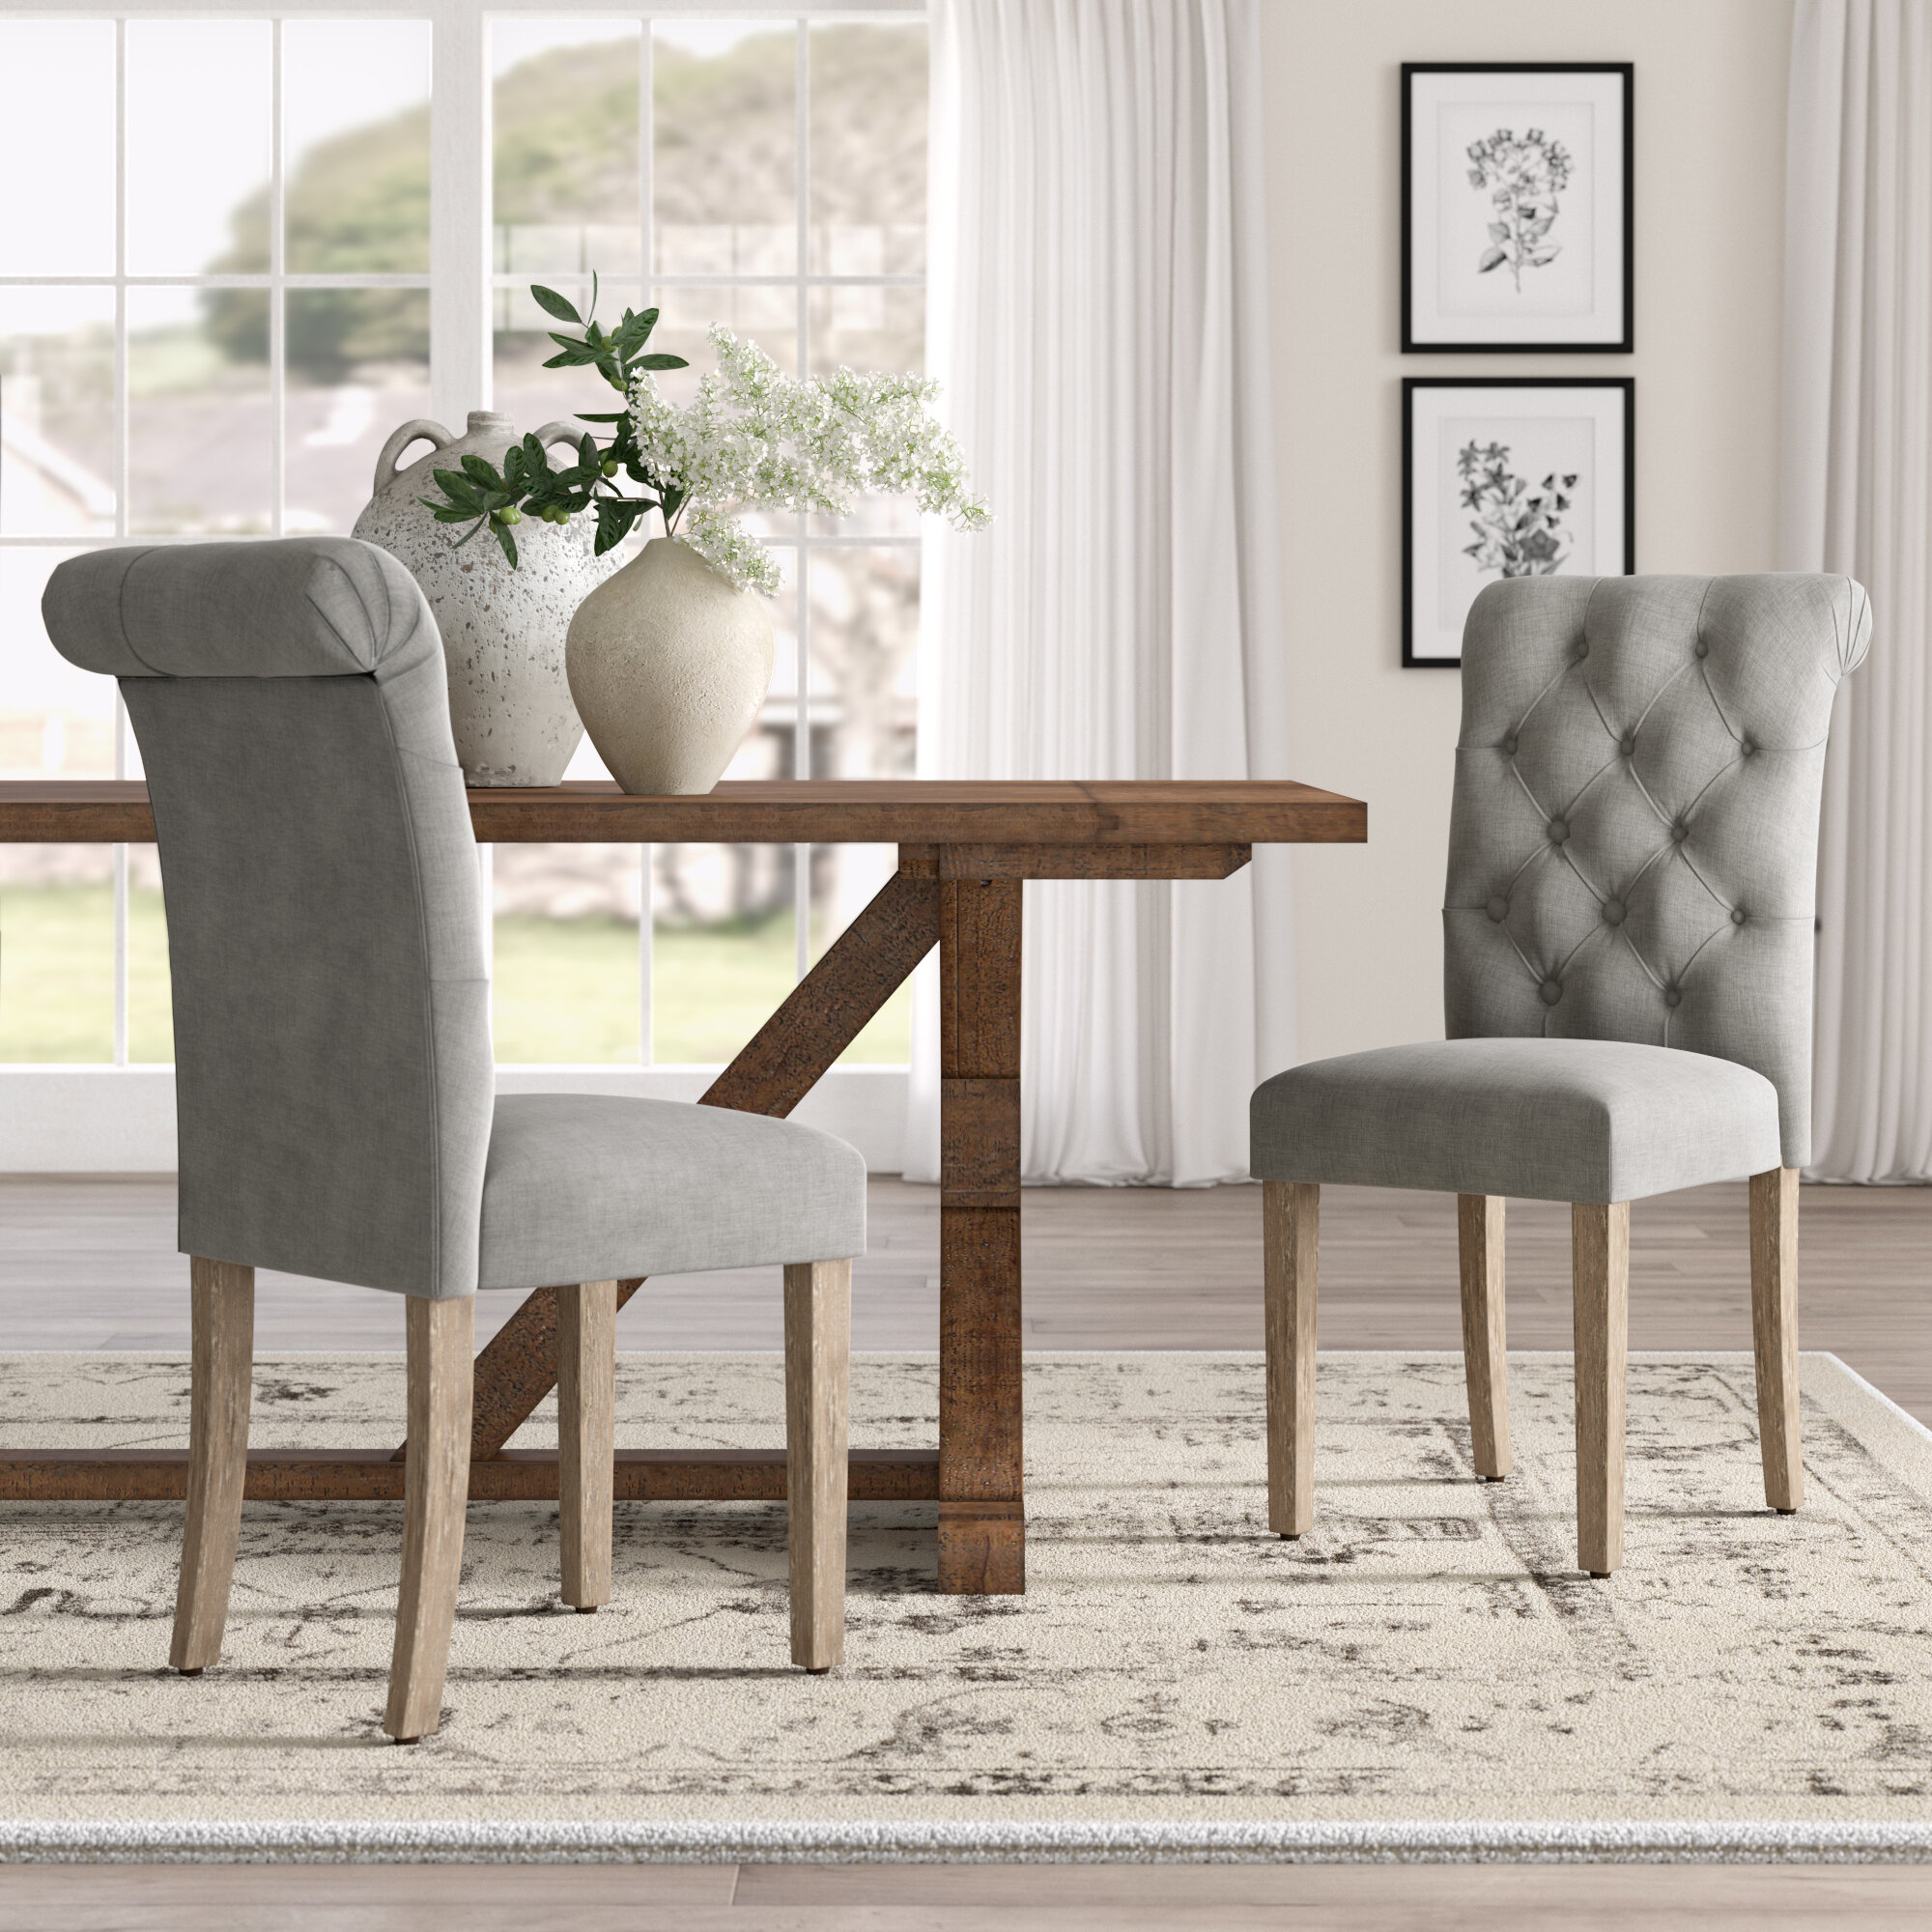 Lark manor bushey roll top tufted modern upholstered dining chair reviews wayfair